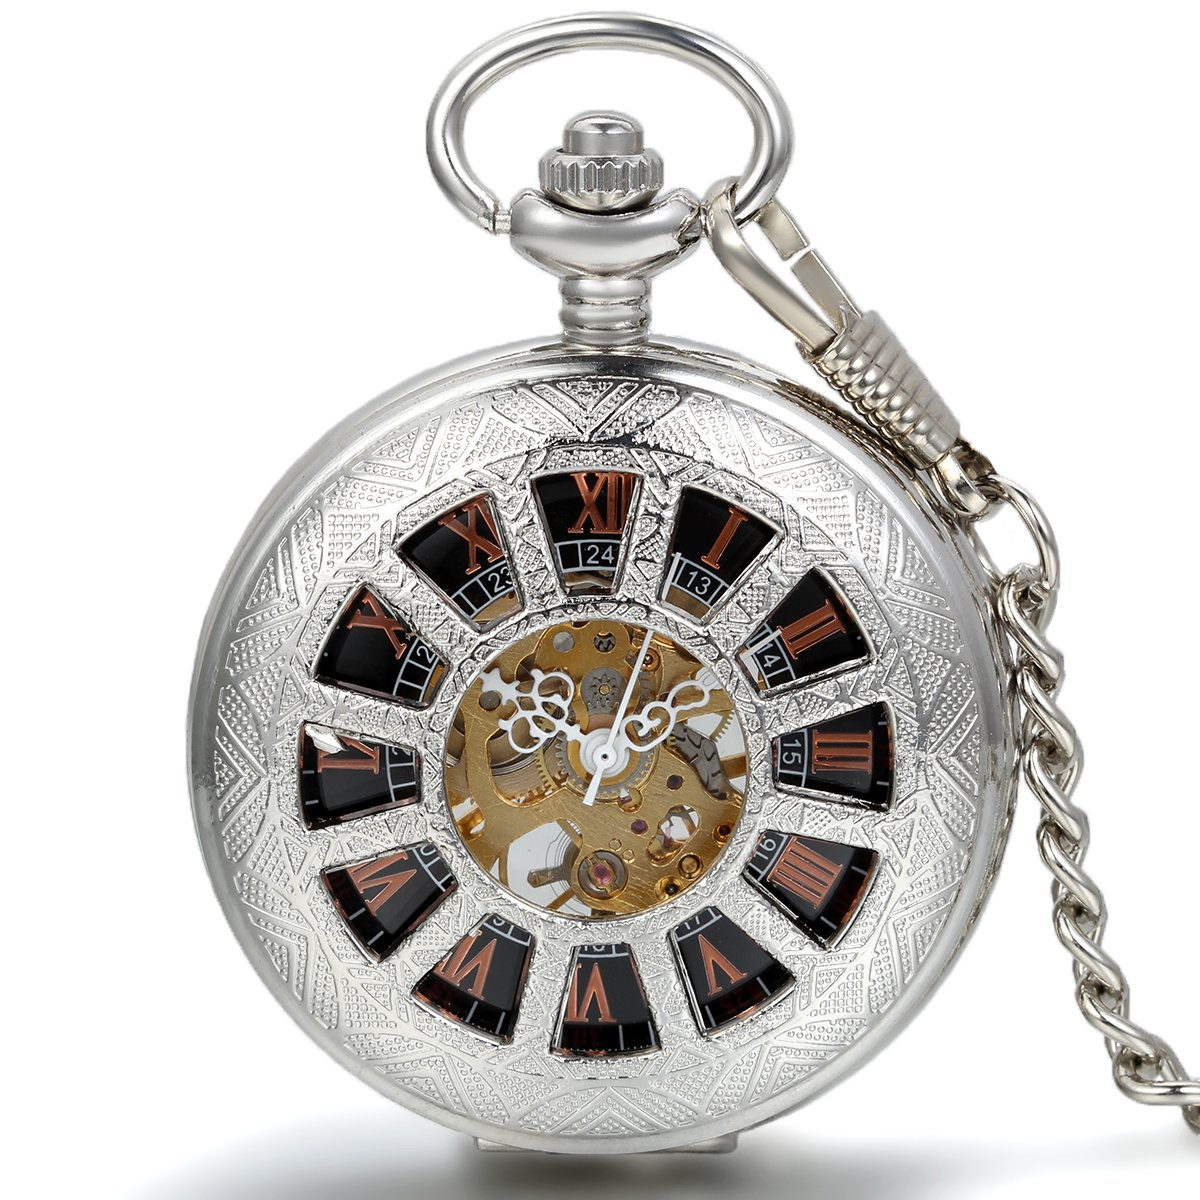 JewelryWe Deluxe Wheel Style Pocket Watch, Mechanical Movement Hand Wind Pocket Watch, Half Hunter Watch with Chain by Jewelrywe